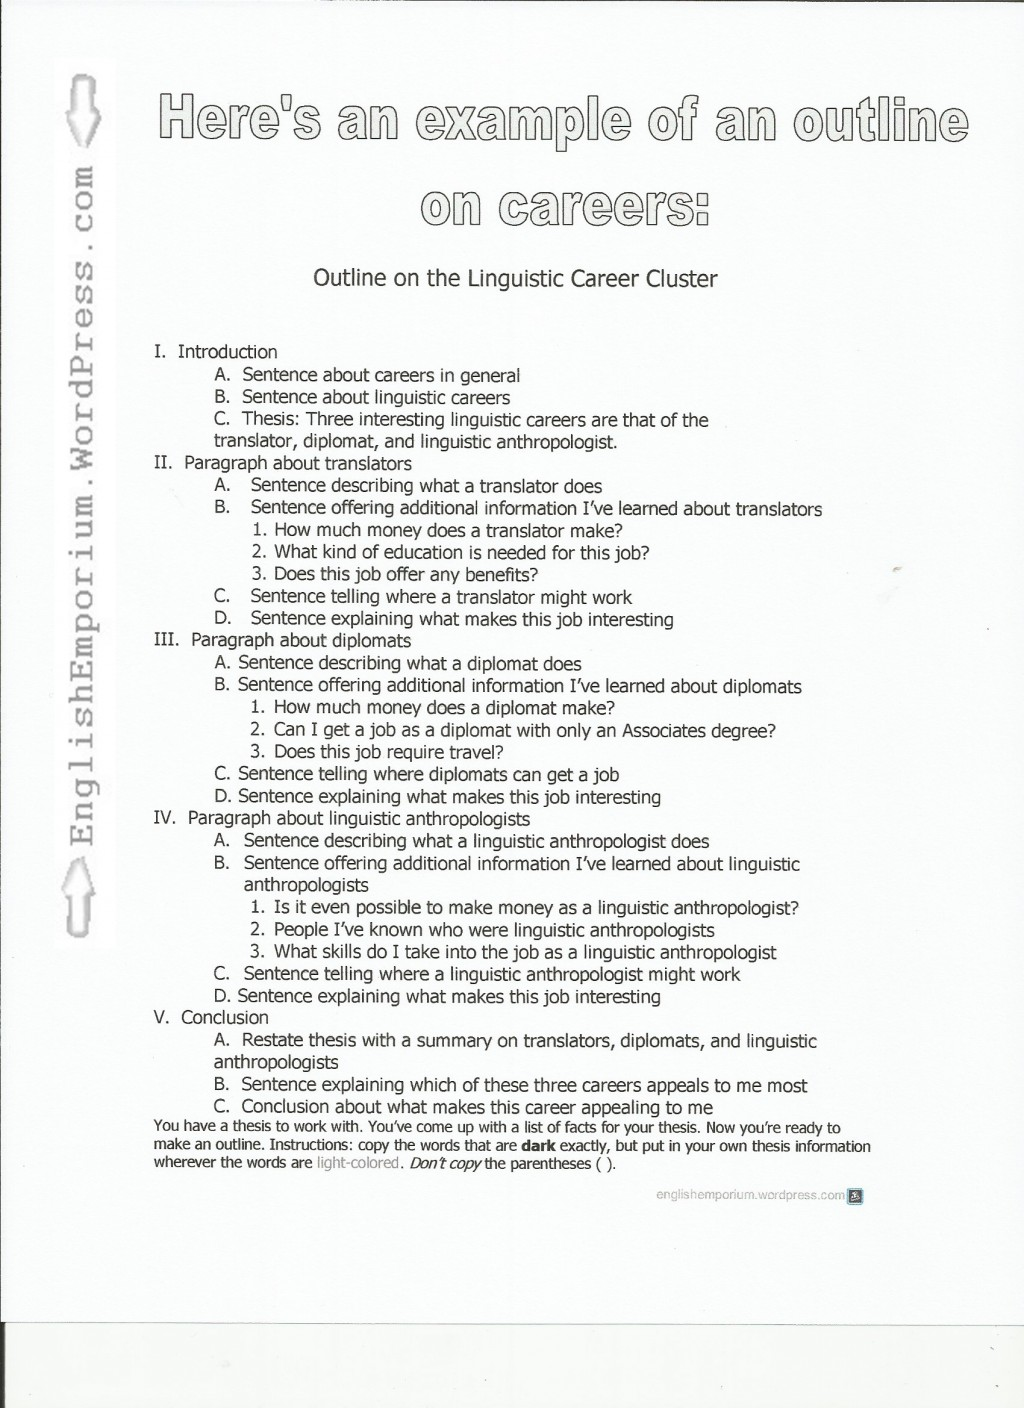 005 Outline On Careers Pg Career Research Paper Unusual Template Large